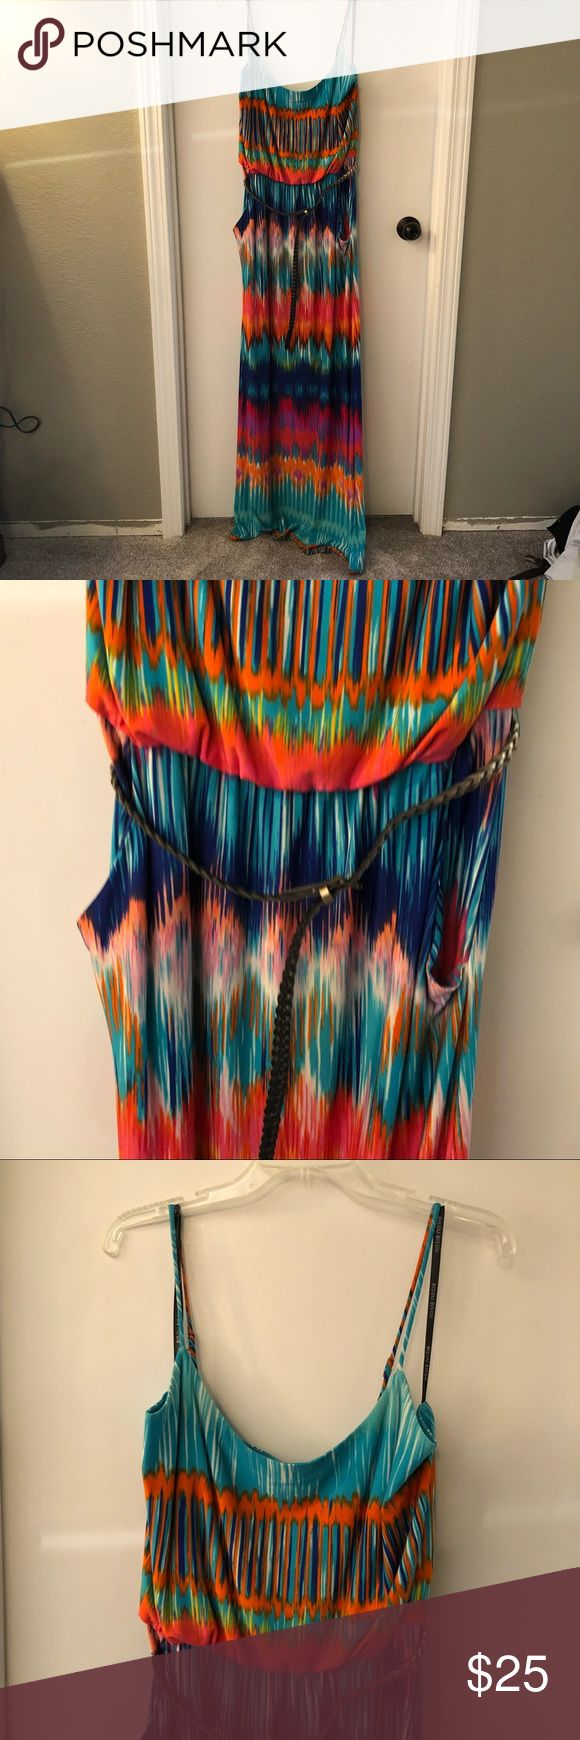 Maxi dress Colorful maxi dress with straps. It comes with a gold braided belt and it has pockets.  It is a fun piece to take on vacation or to the beach. Bisou Bisou Dresses Maxi